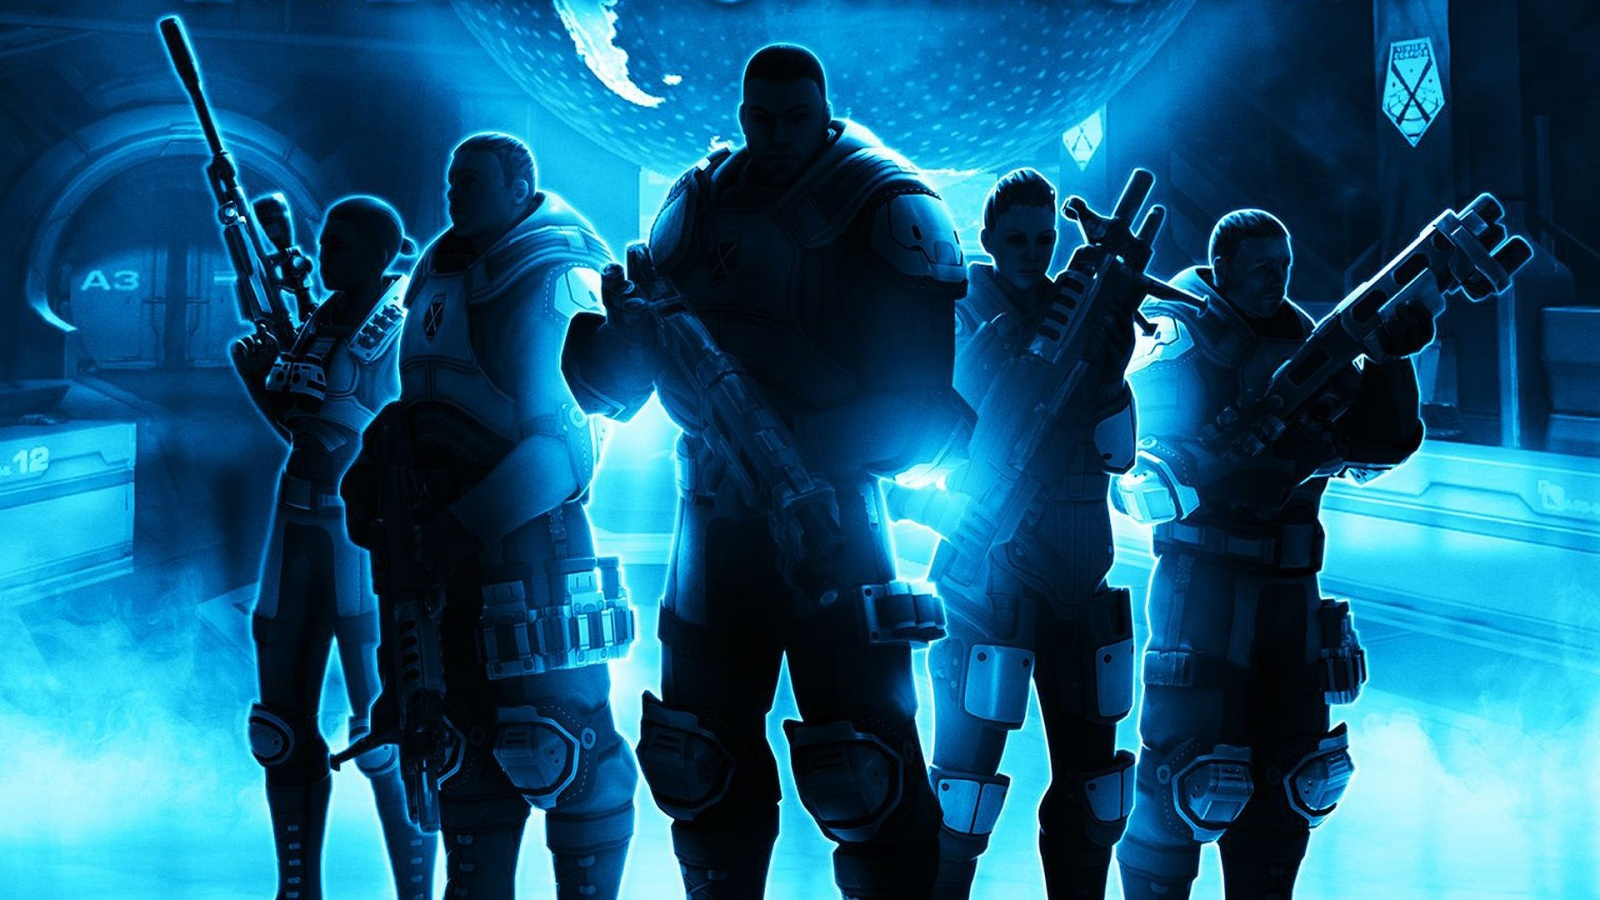 xcom enemy unknown 2012 game 4161485 1920x1080 all for